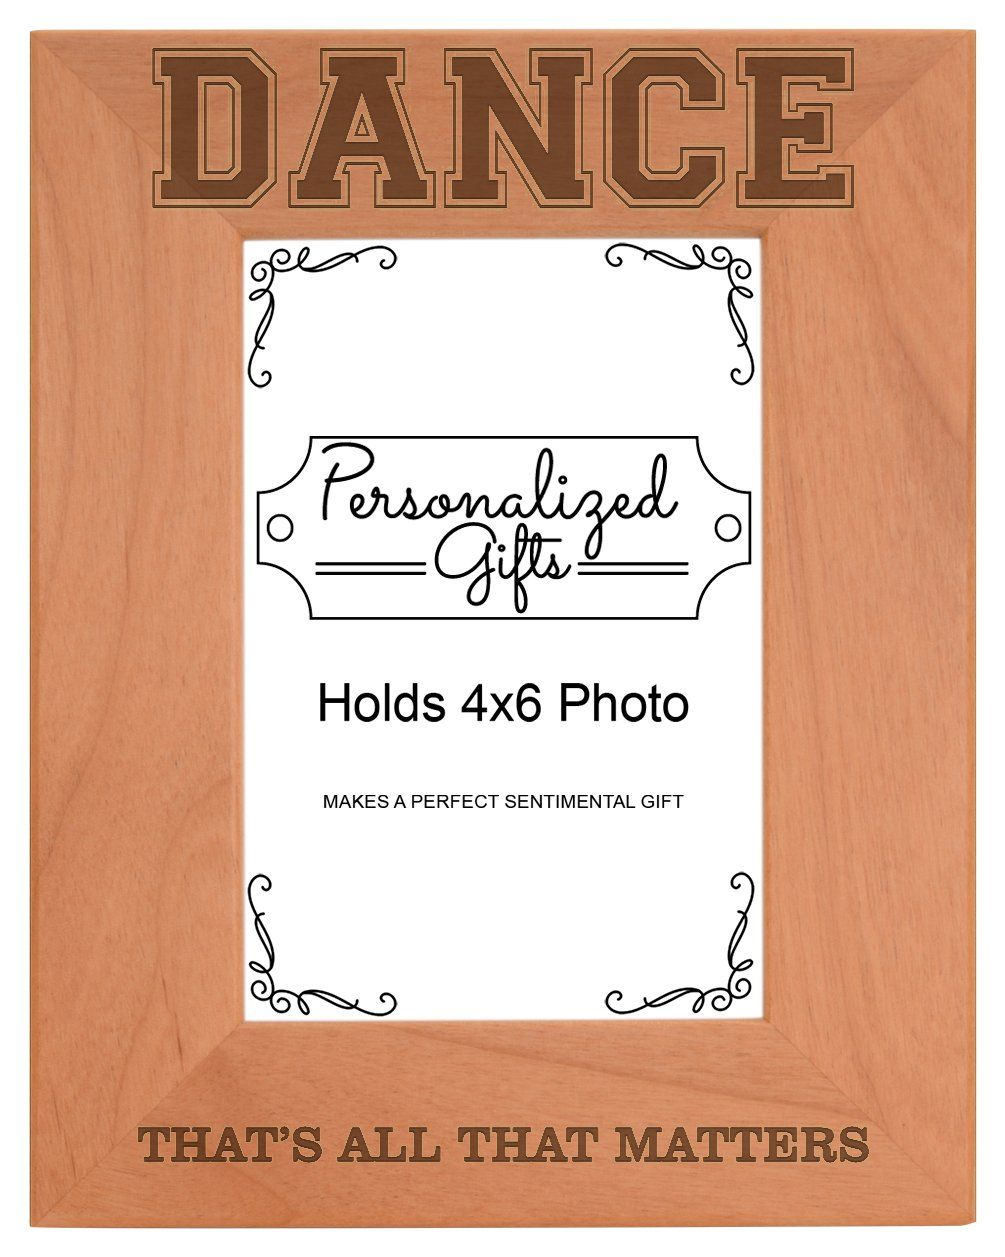 Personalized Gifts Dancer Gift Dancing Thats All That Matters Natural Wood Engraved 4x6 Portrait Pi Grandma Picture Frame Picture Frames Personalised Gift Shop